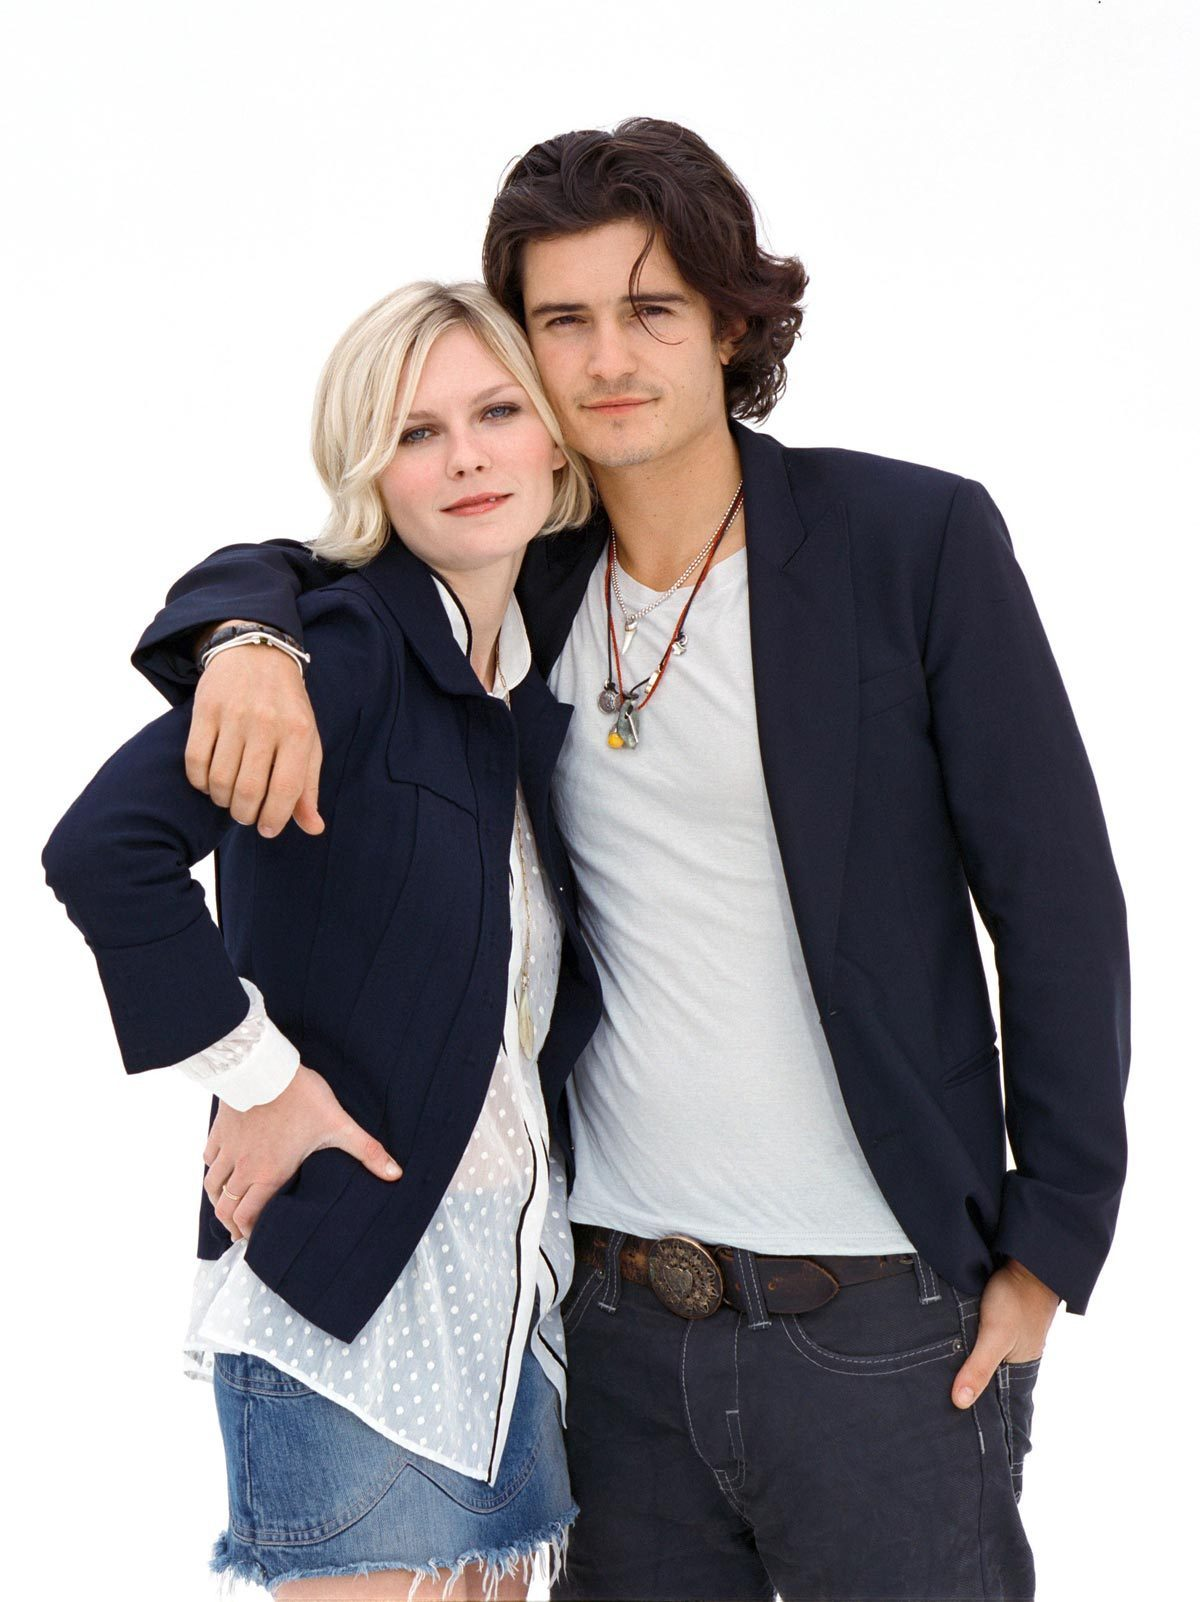 Kirsten Dunst and orlando bloom